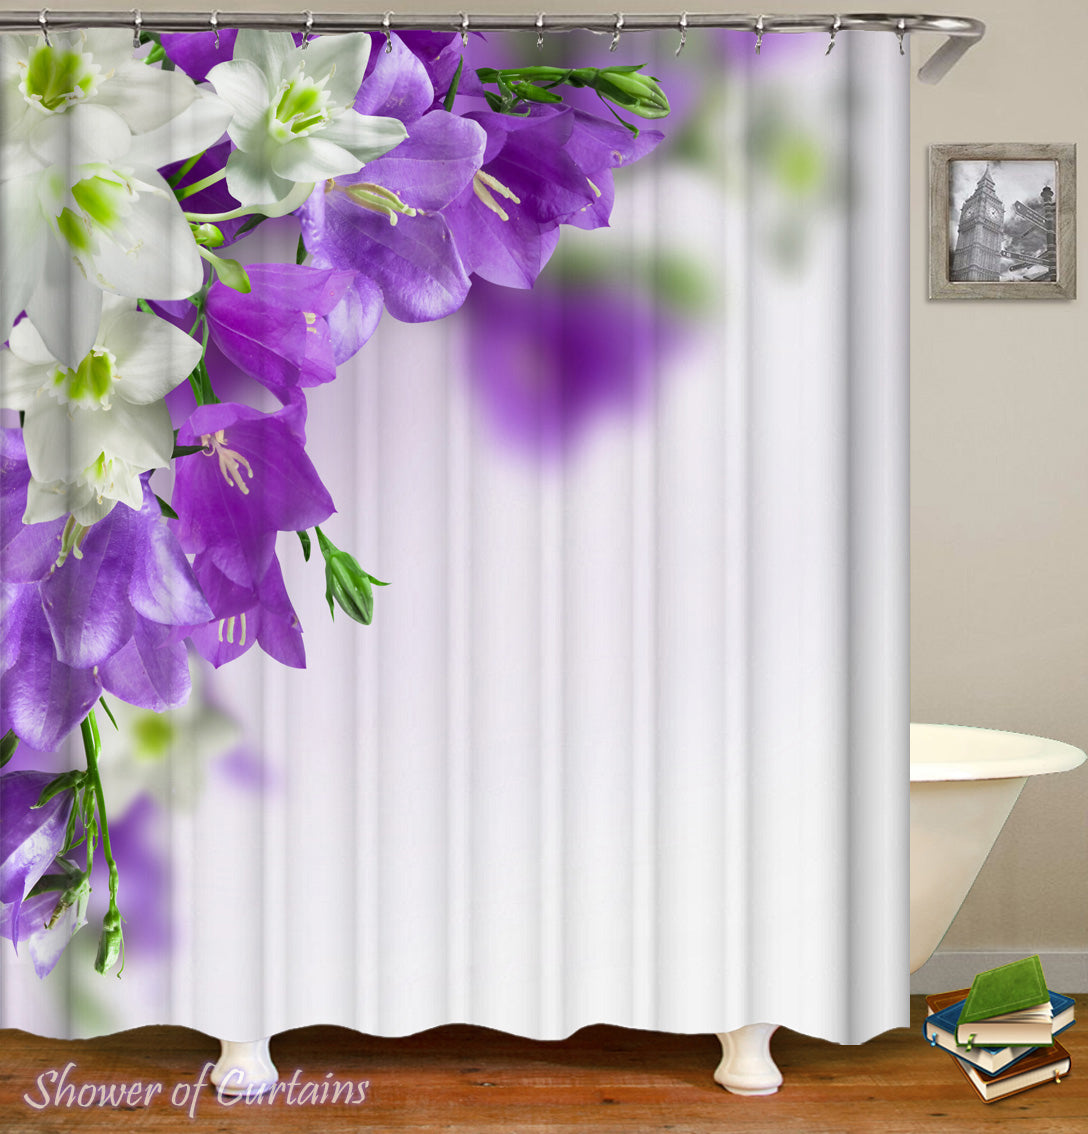 Shower curtains purple and white flowers shower of curtains shower curtain of purple and white flowers mightylinksfo